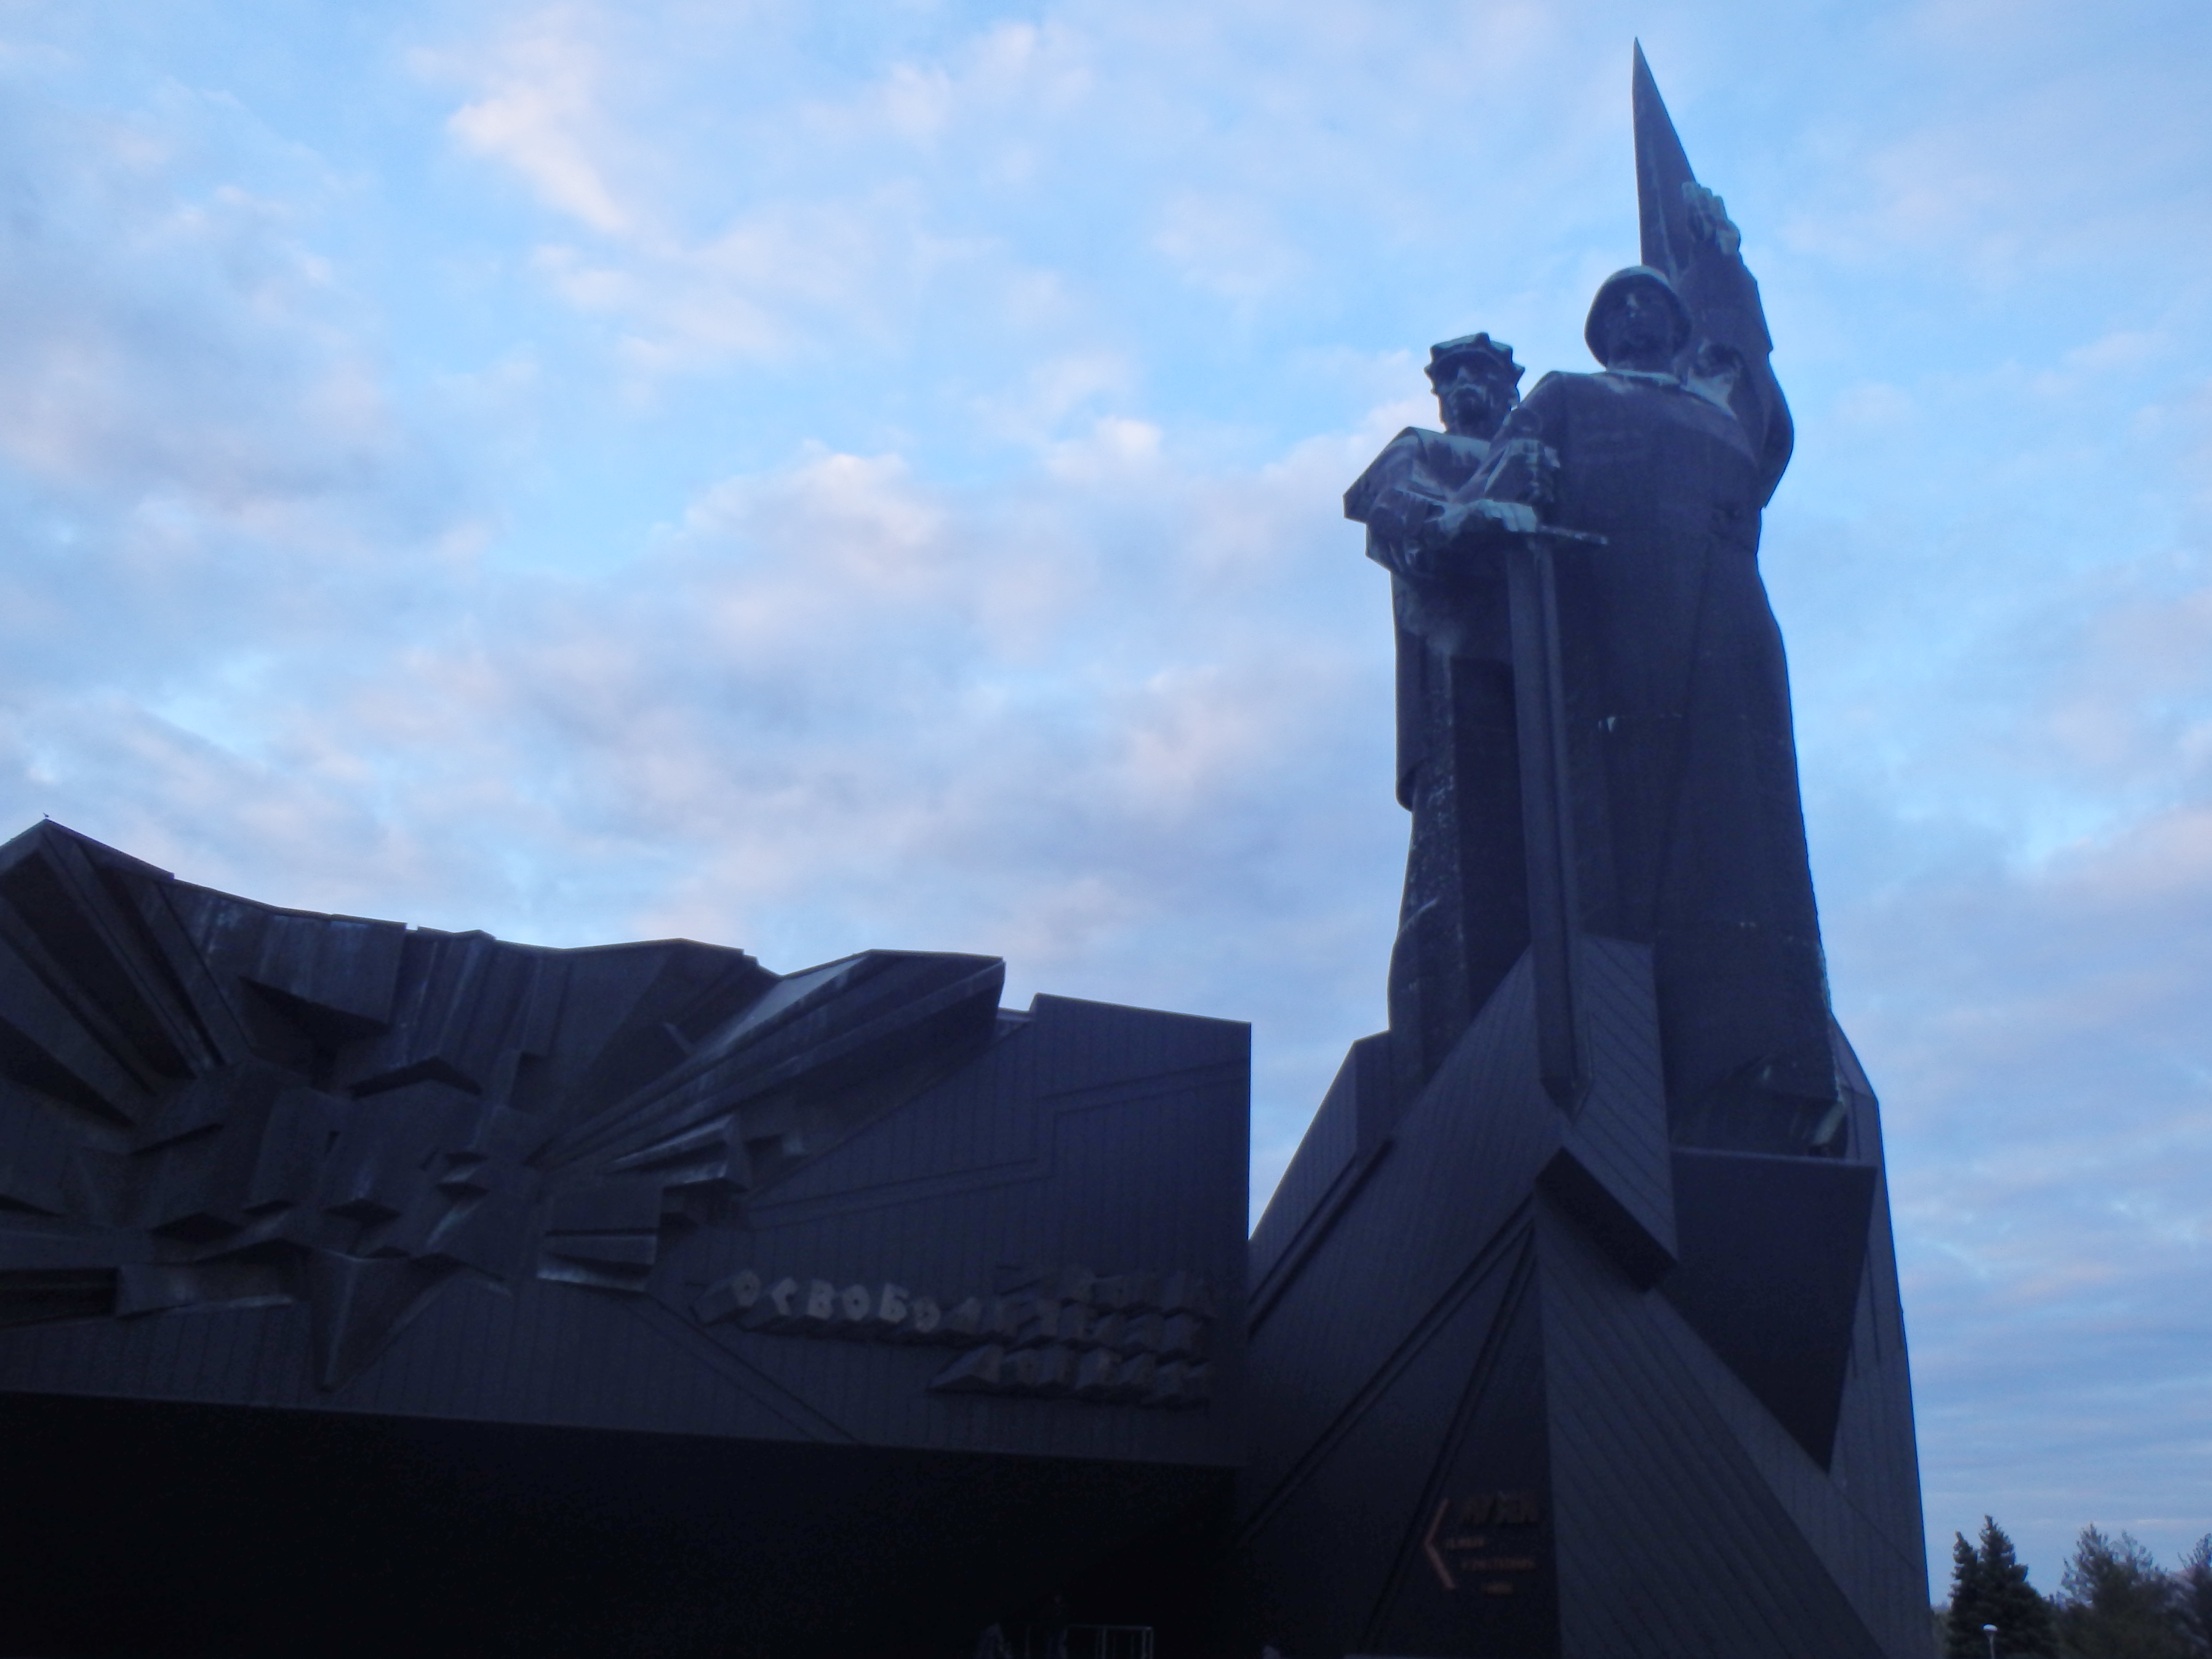 Donbass Liberator Monument